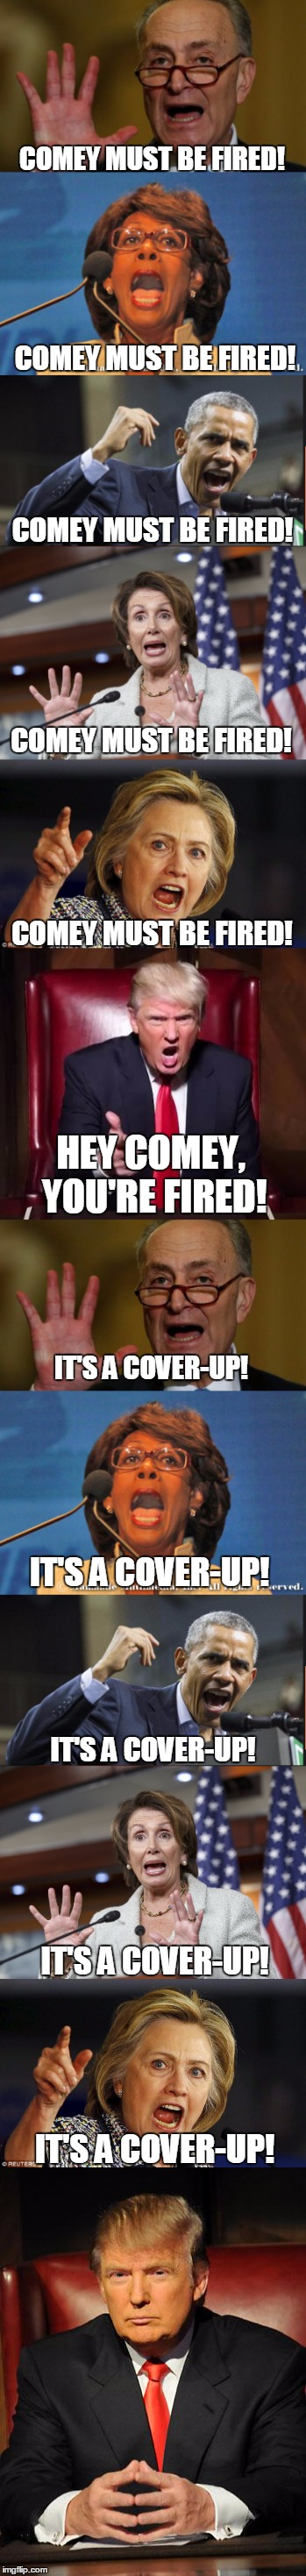 I'd like a refill on my hypocrisy, please. | COMEY MUST BE FIRED! COMEY MUST BE FIRED! COMEY MUST BE FIRED! COMEY MUST BE FIRED! COMEY MUST BE FIRED! HEY COMEY, YOU'RE FIRED! IT'S A COV | image tagged in donald trump,james comey,liberal hypocrisy,hillary clinton,democrats,liars | made w/ Imgflip meme maker